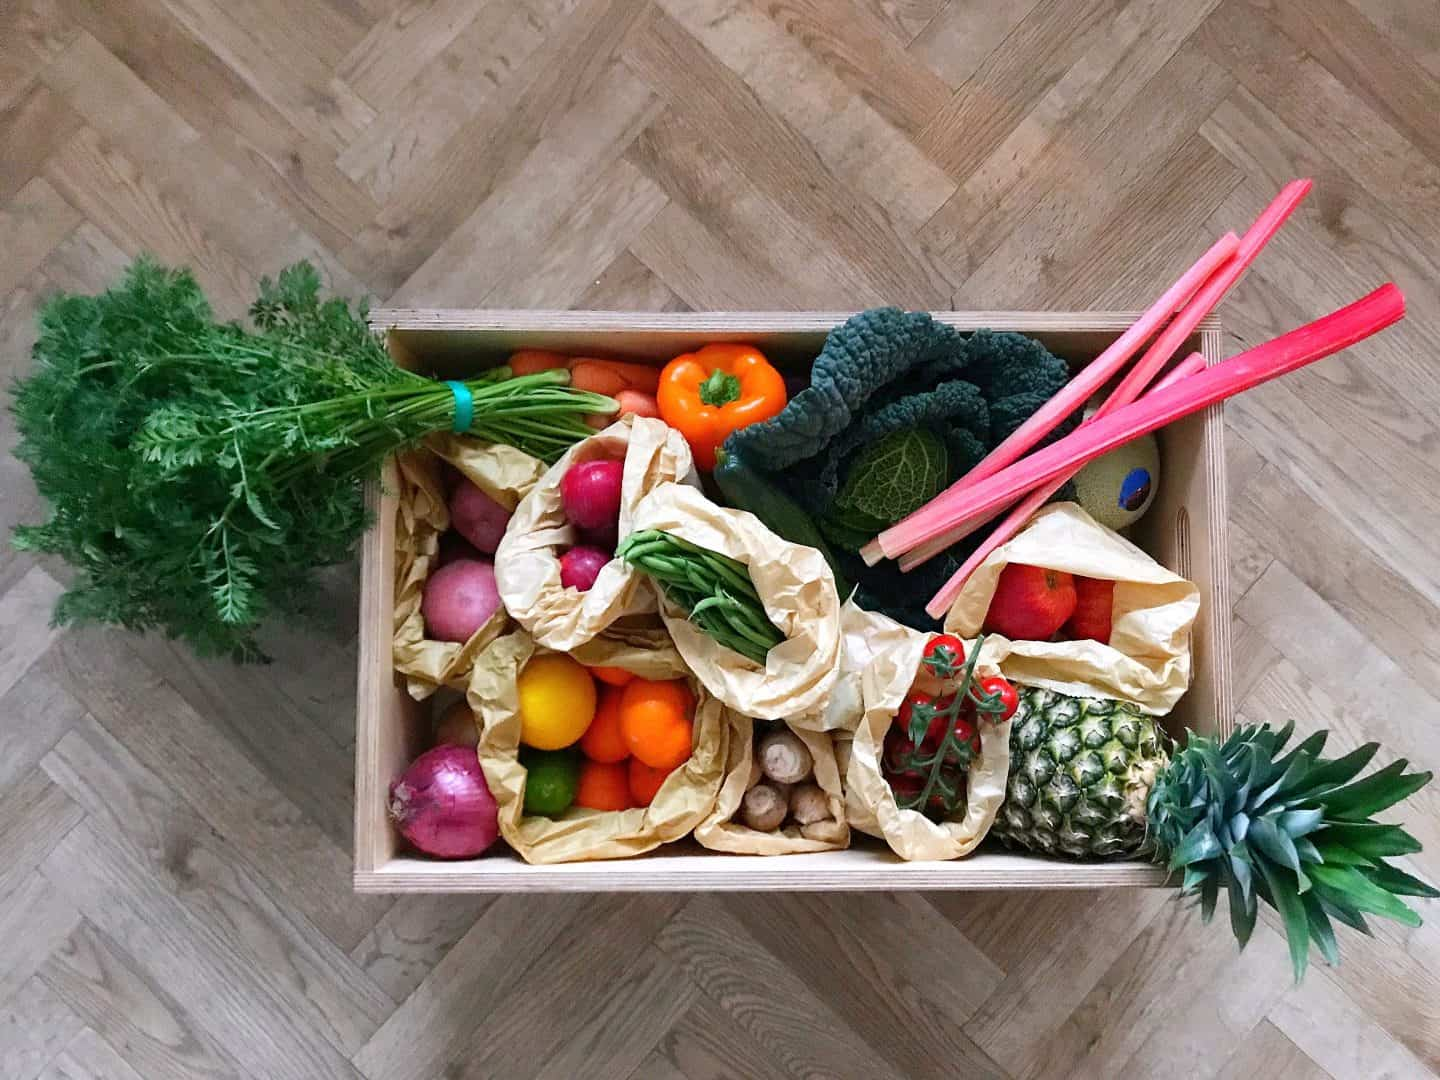 Plastic-free fruit and veg box from Harvest